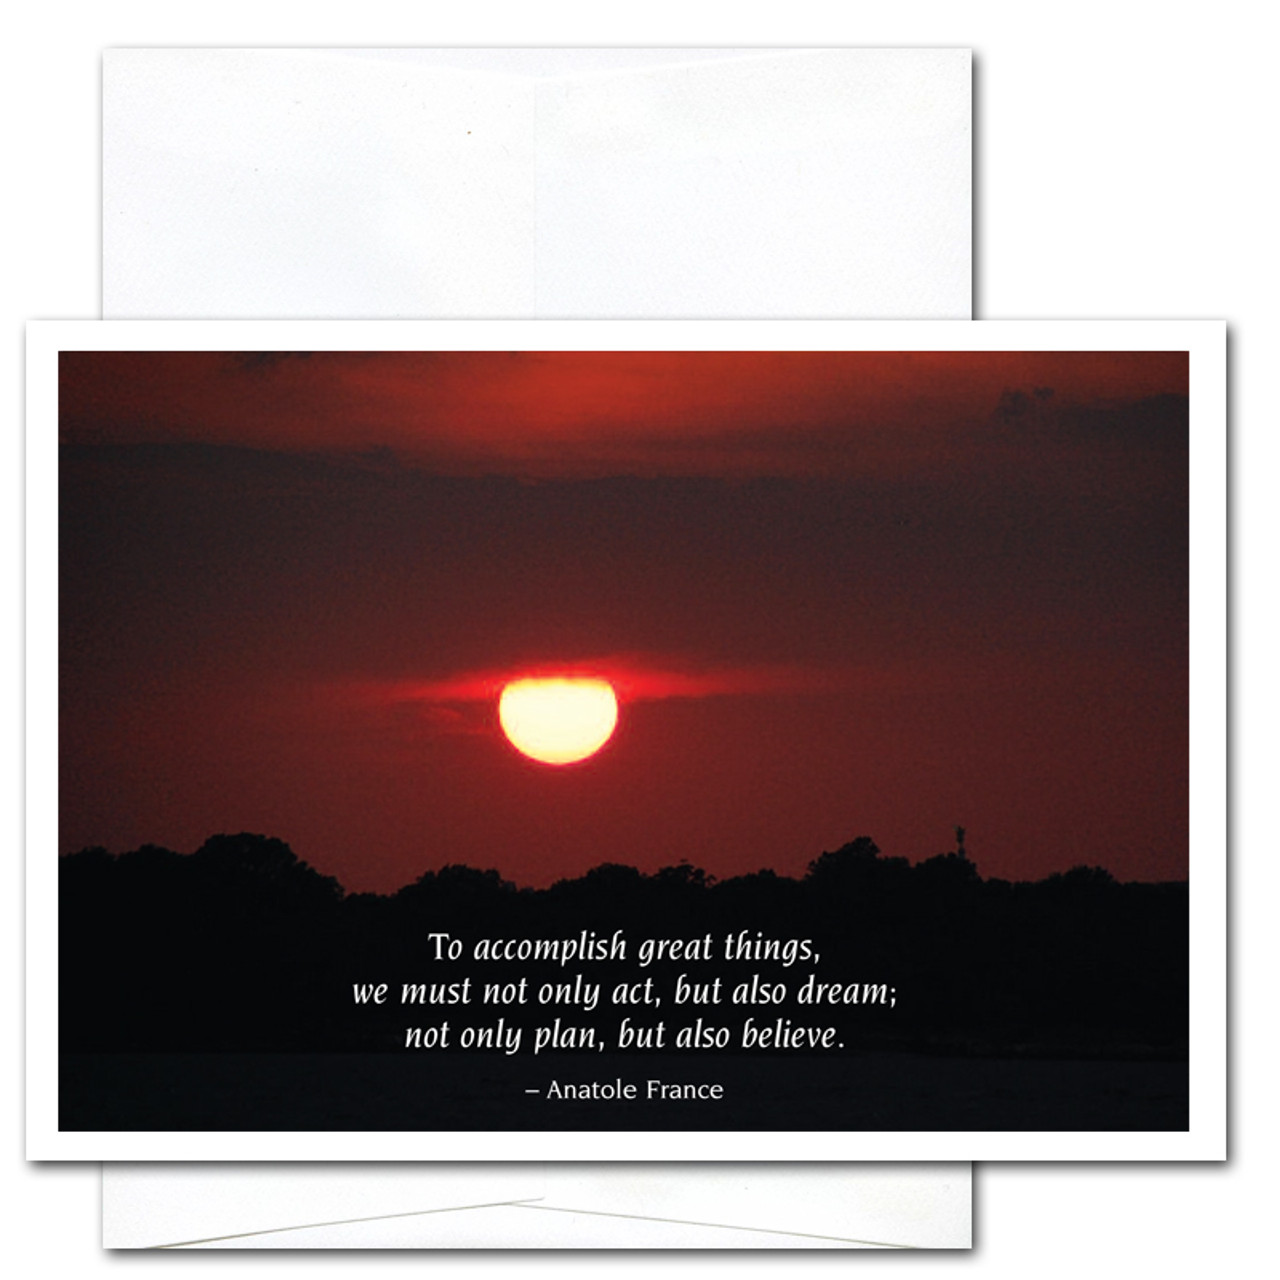 business new year card great things cover shows photo of sunset in deep reds with